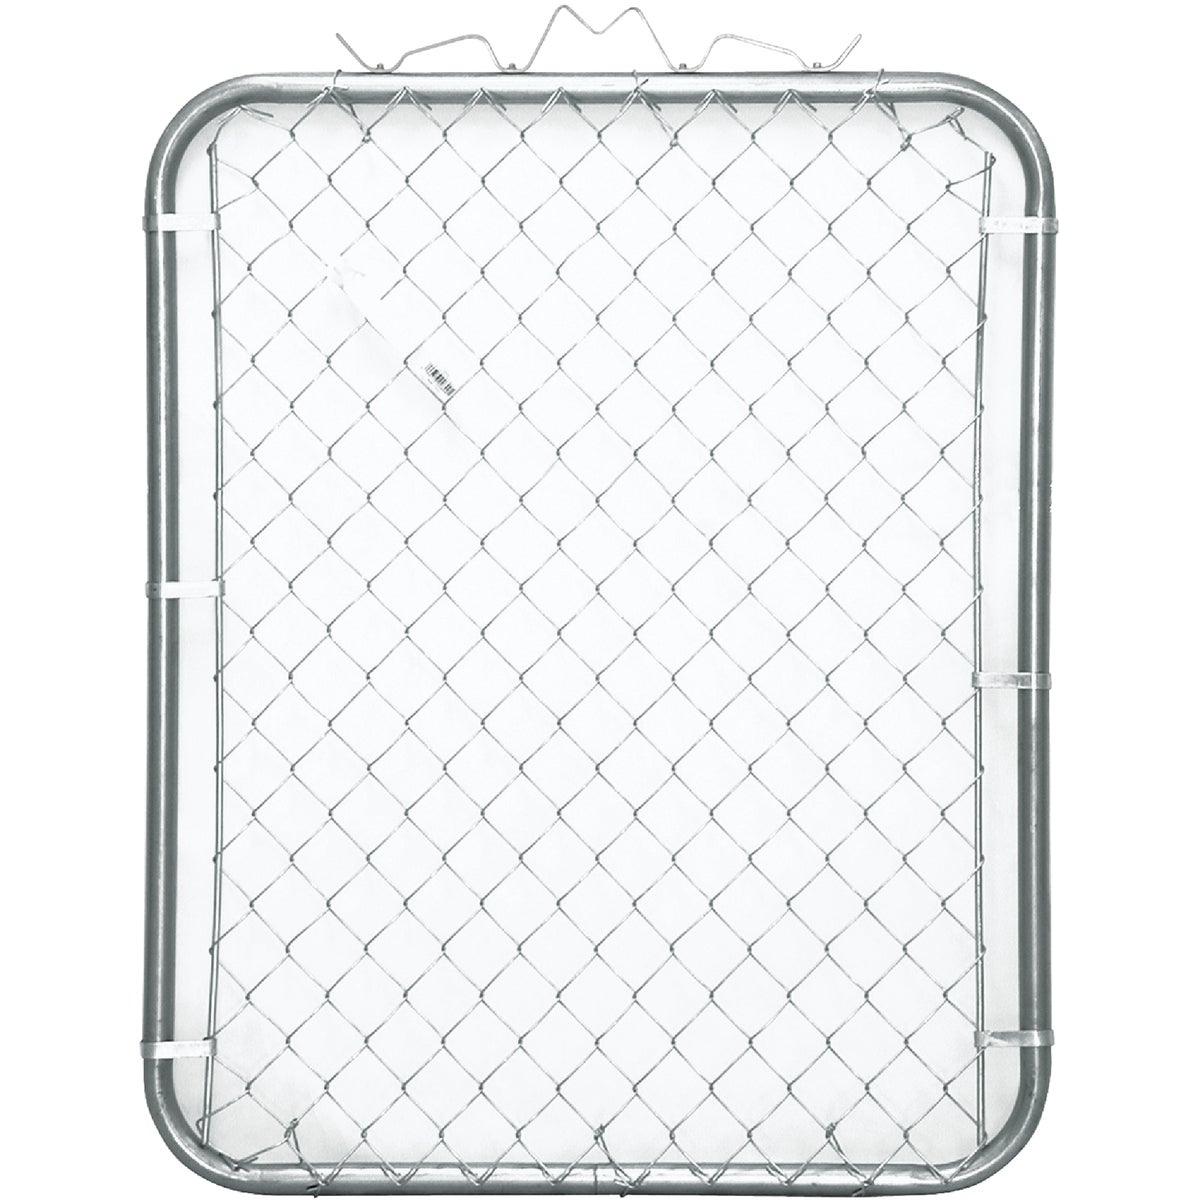 39X60 SINGLE WALK GATE - 308583A by Midwest Air Tech